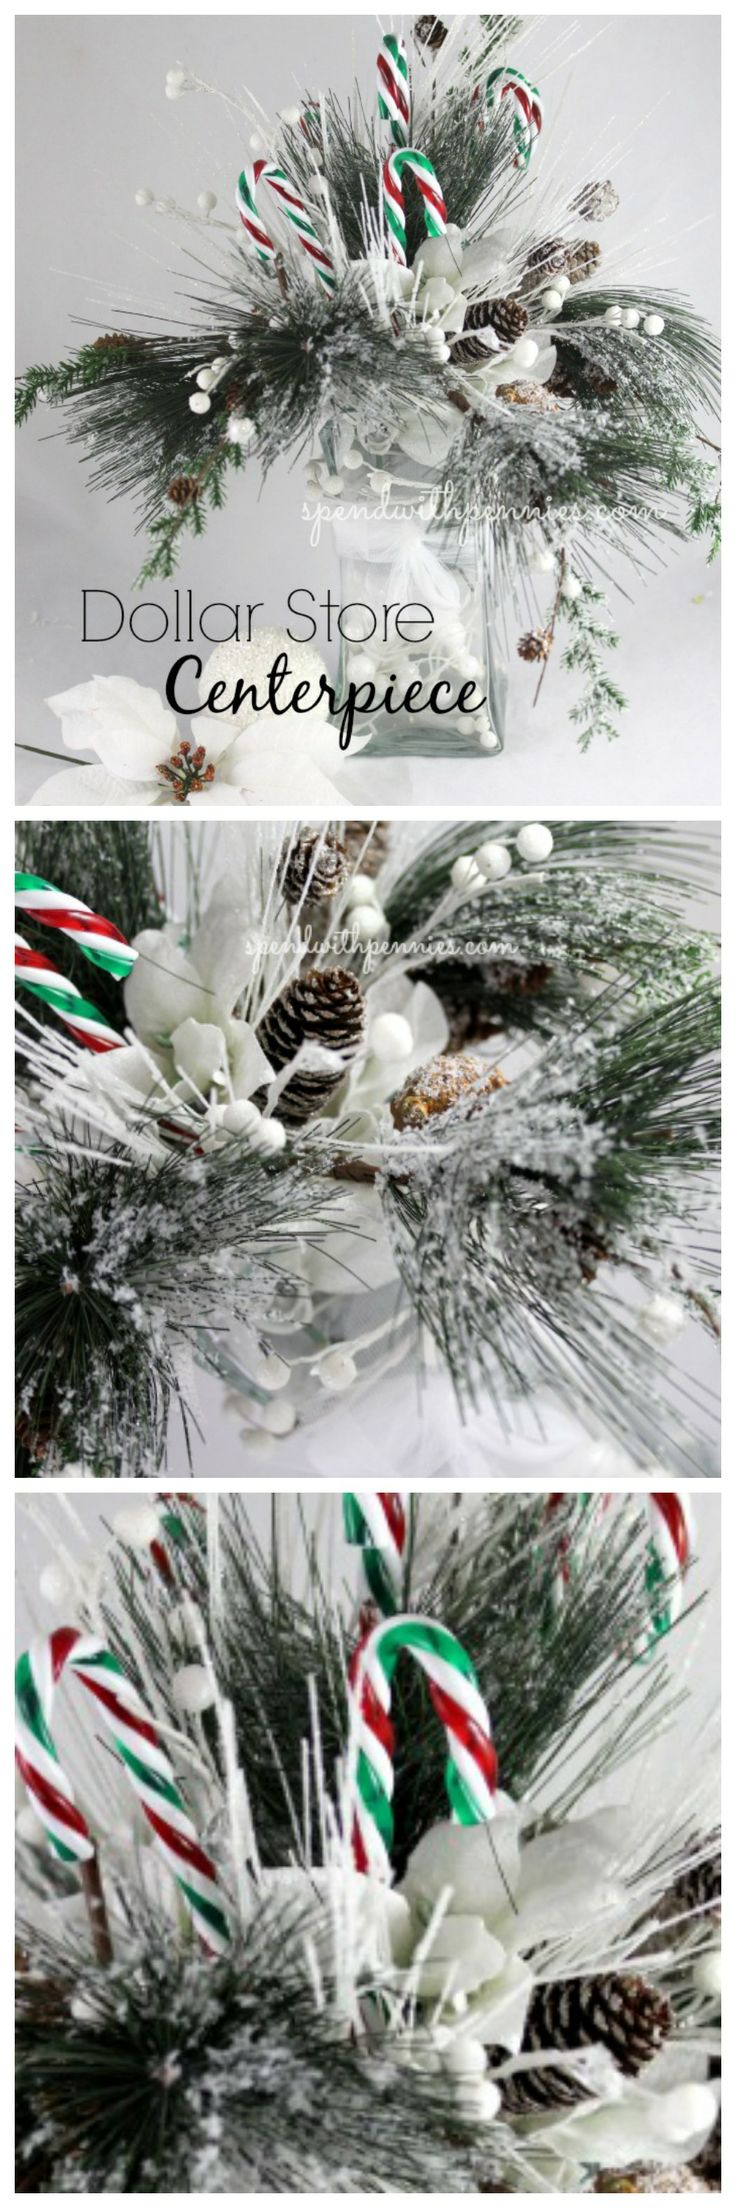 Create A Stunning Centerpiece With Dollar Store Items! This Beautiful  Centerpiece Cost Only $9 To